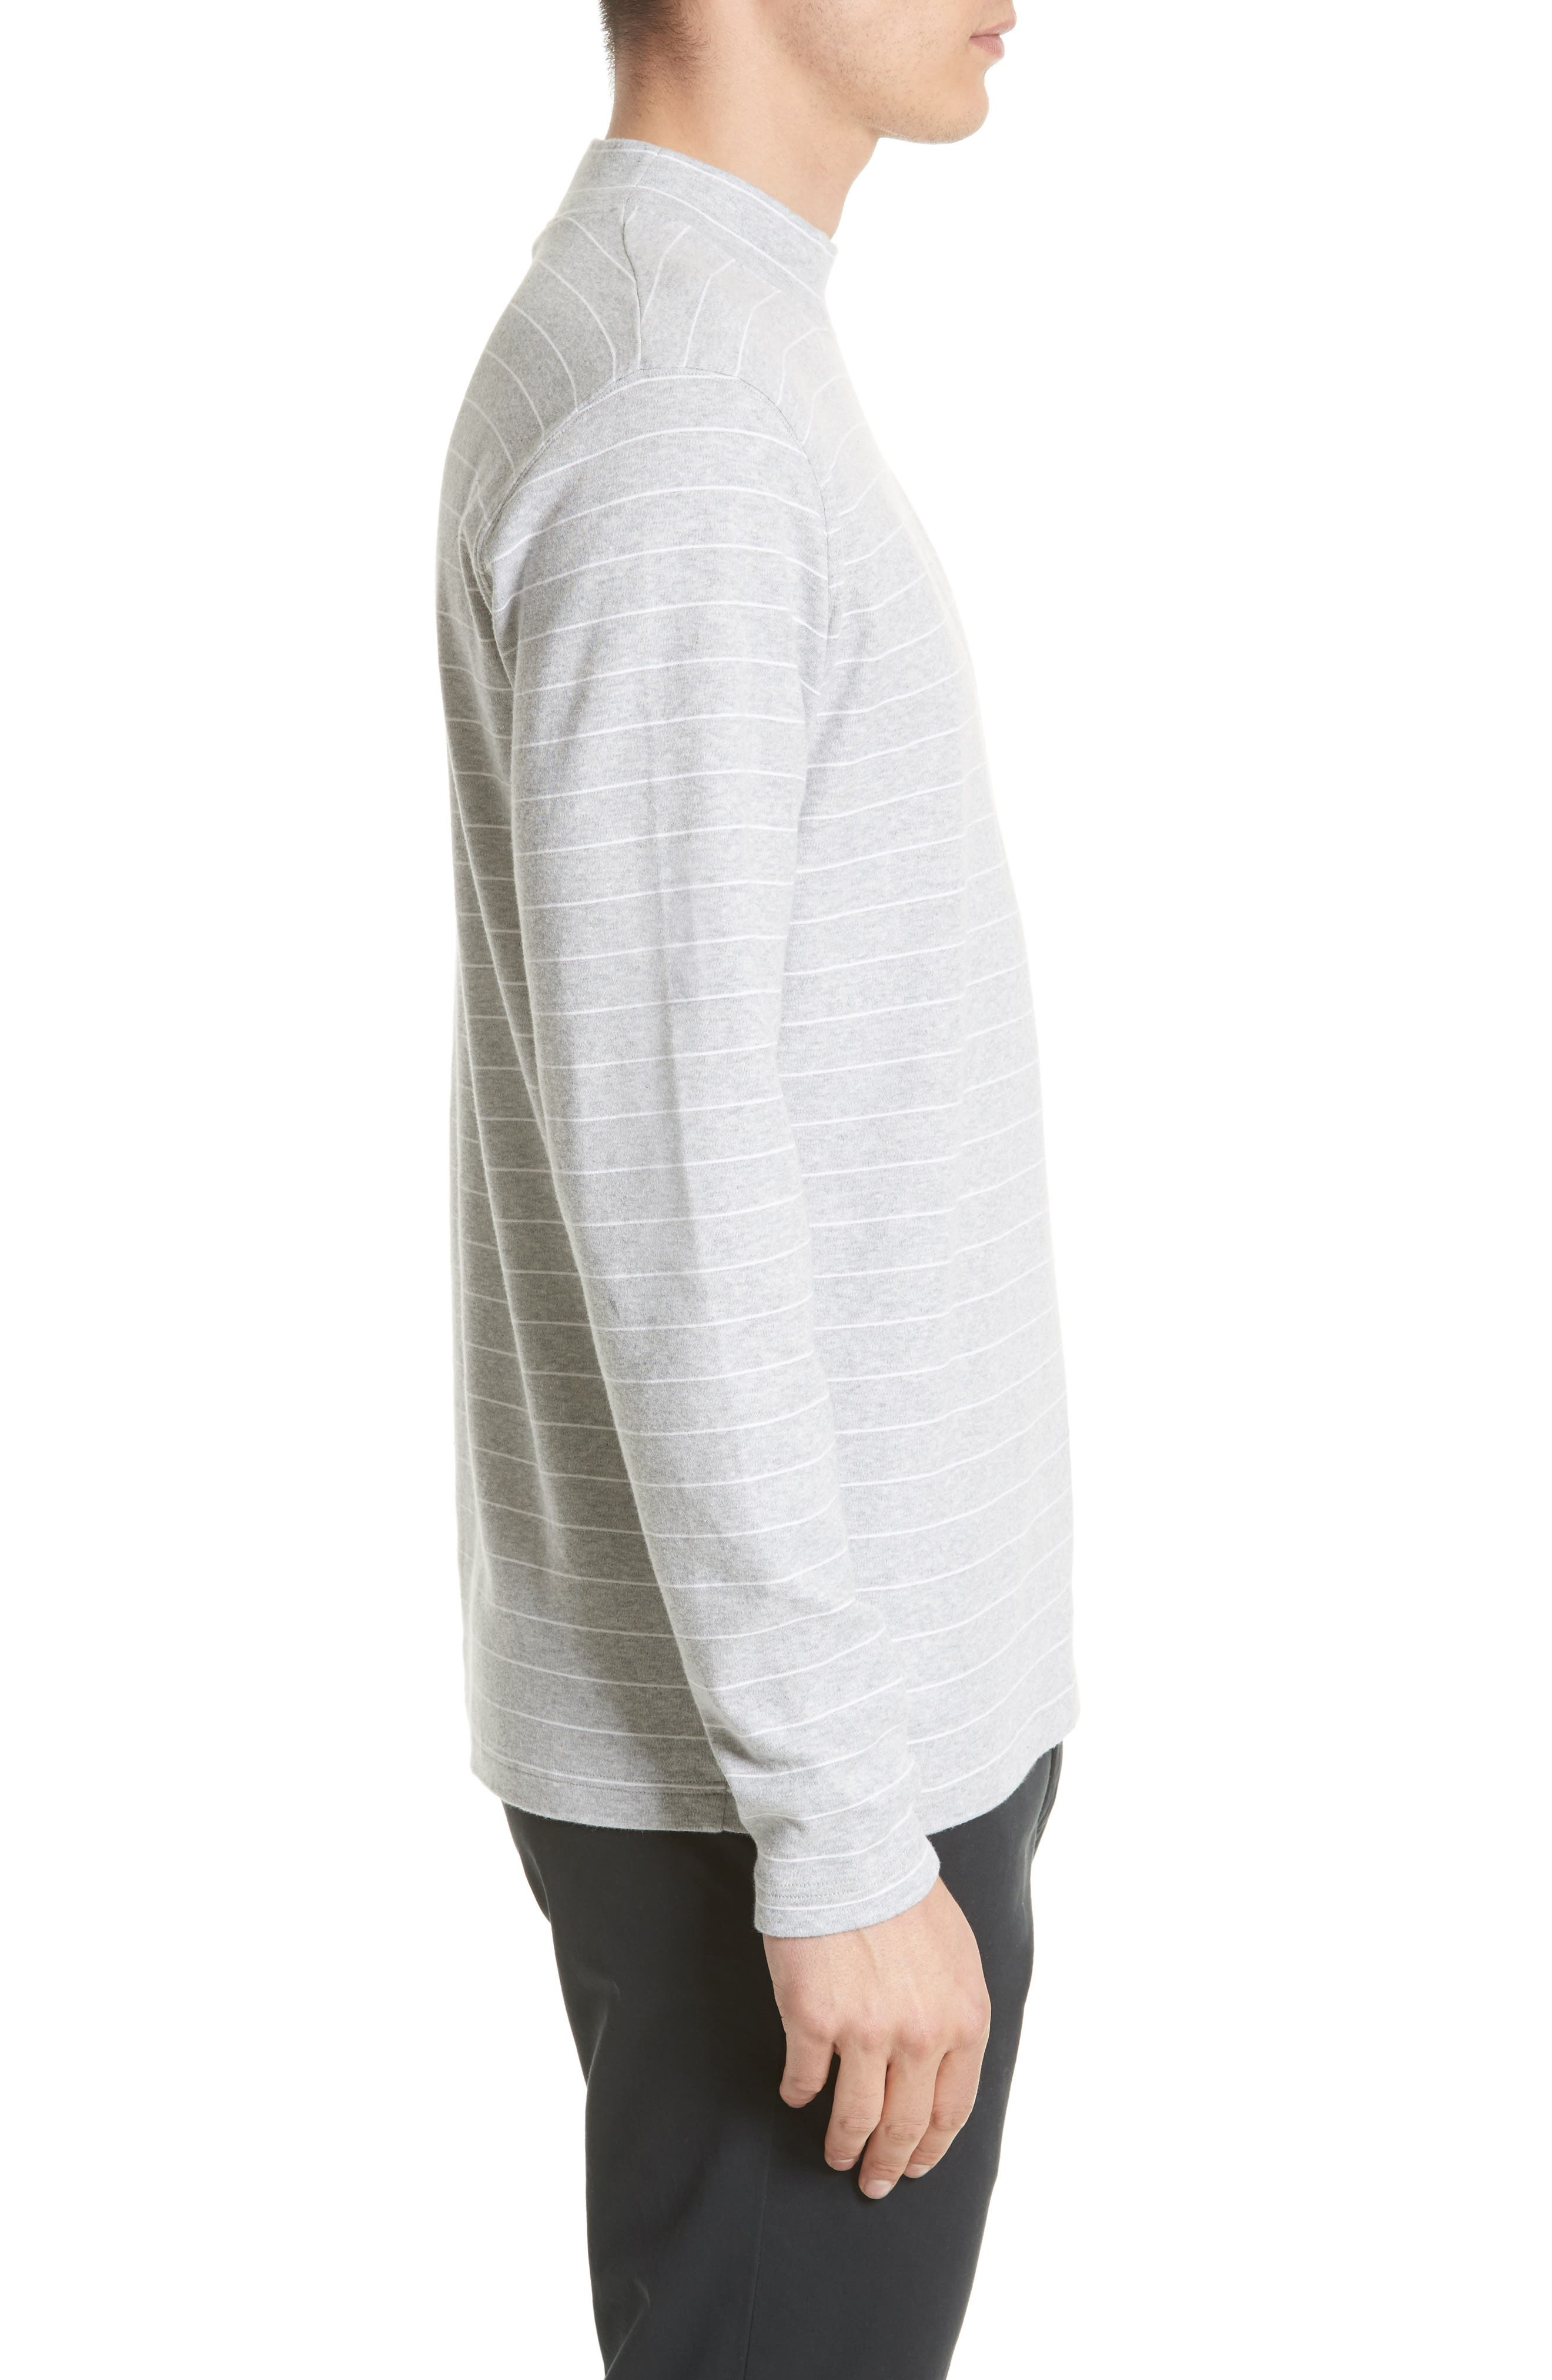 NORSE PROJECTS,                             Harald Mock Neck T-Shirt,                             Alternate thumbnail 3, color,                             050